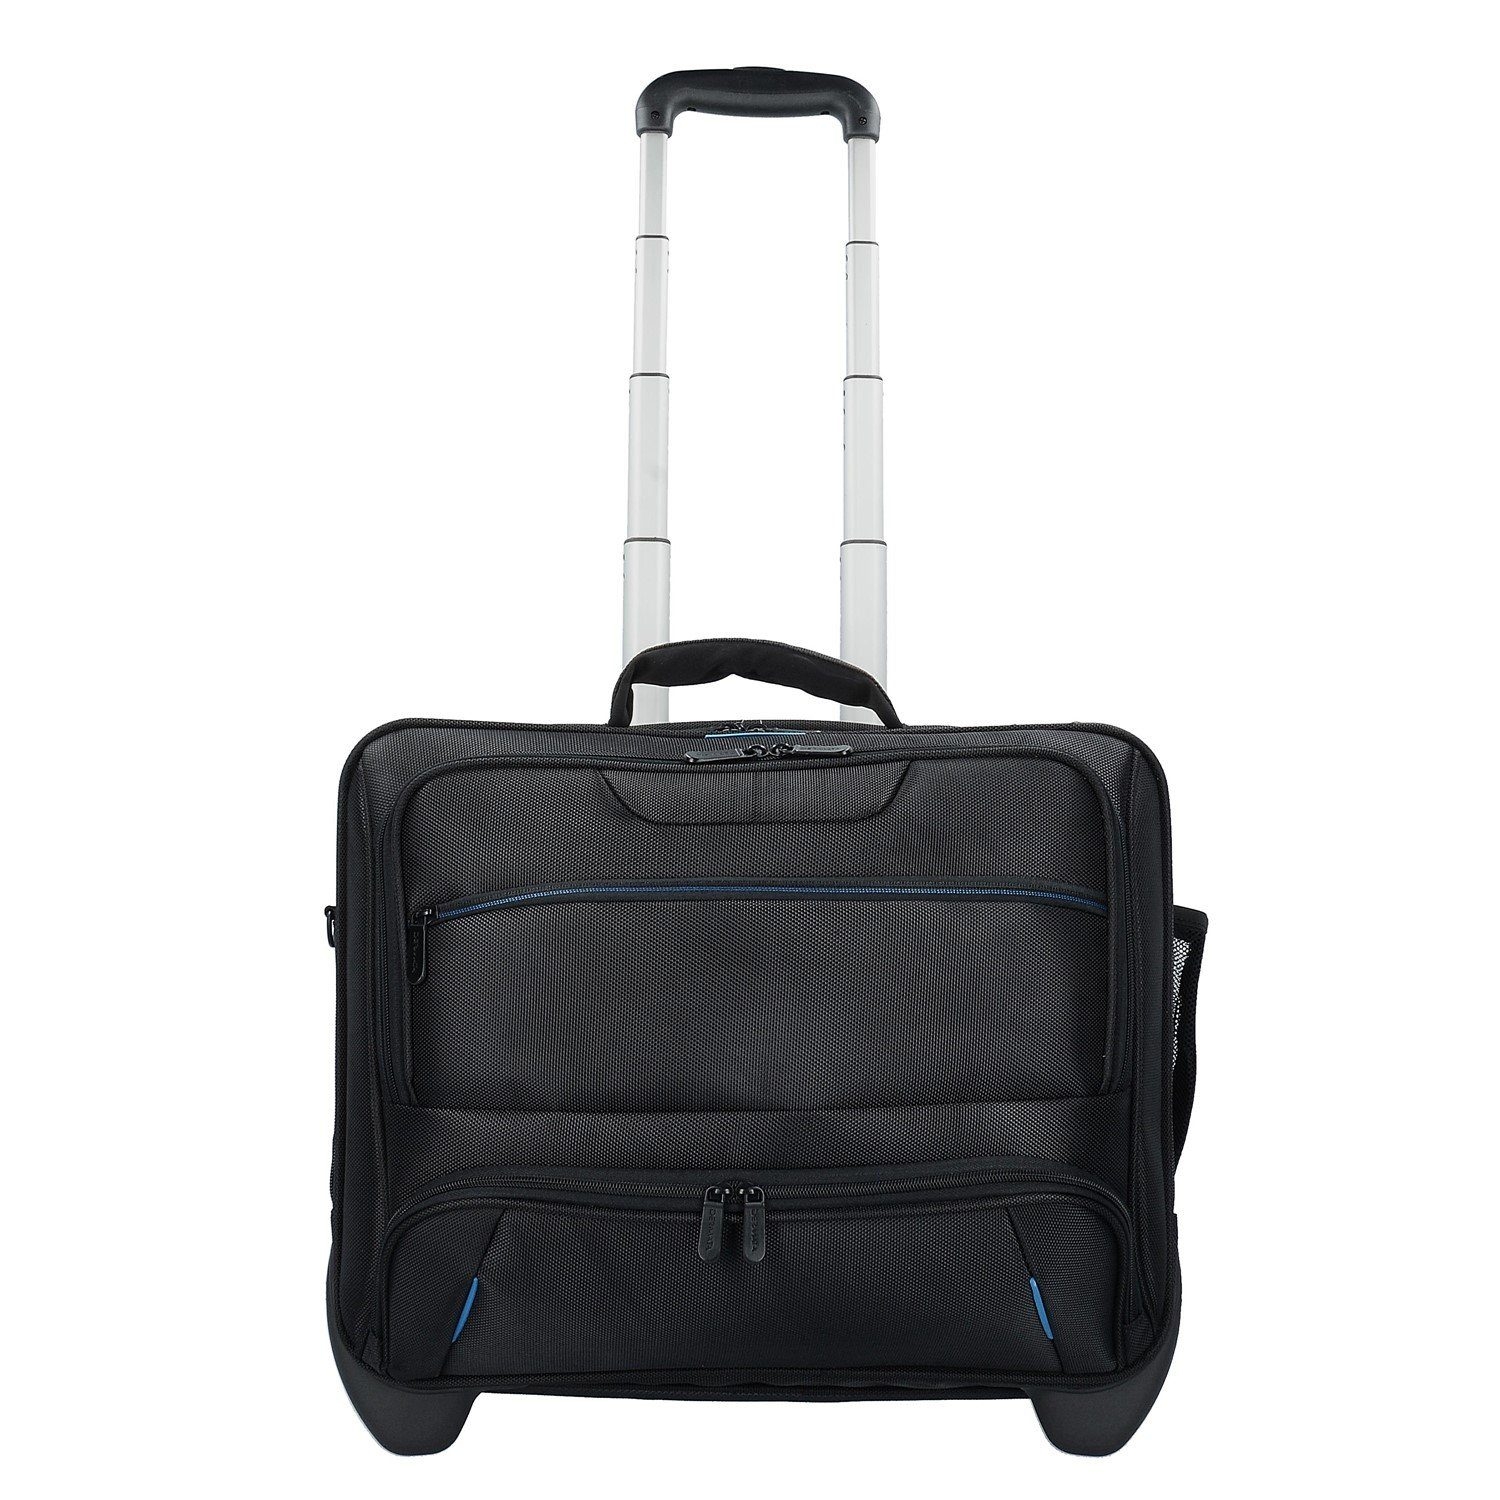 Dermata 2-Rollen Businesstrolley 42 cm Laptopfach